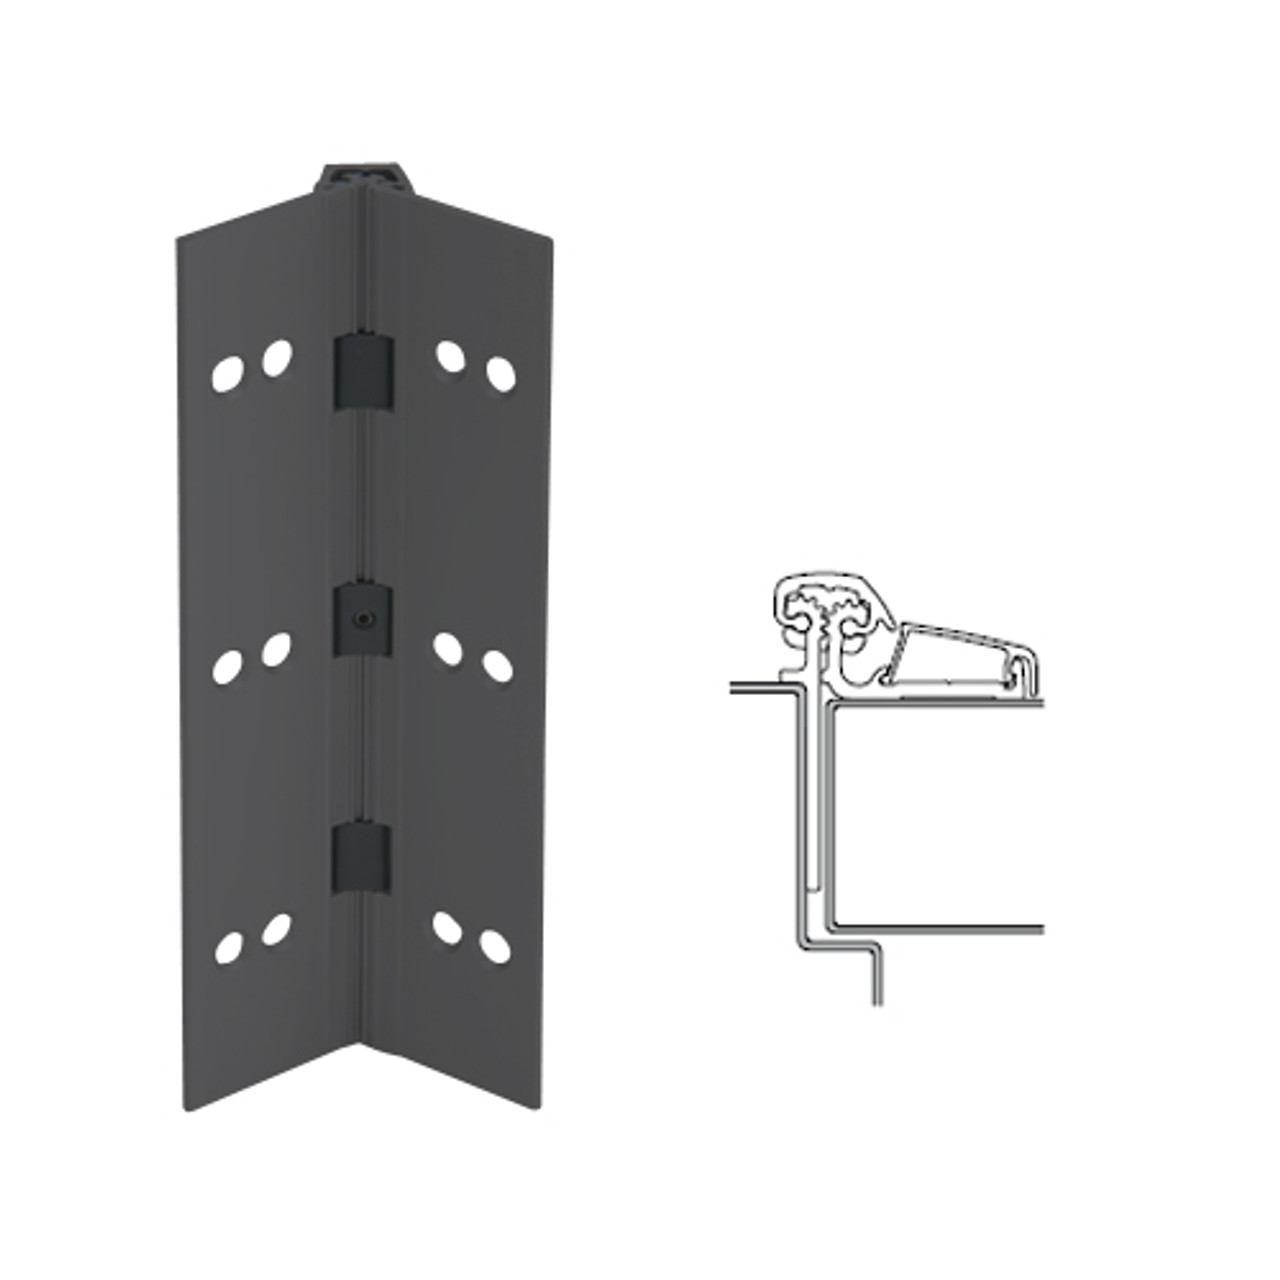 053XY-315AN-120-SECWDHM IVES Adjustable Half Surface Continuous Geared Hinges with Security Screws - Hex Pin Drive in Anodized Black